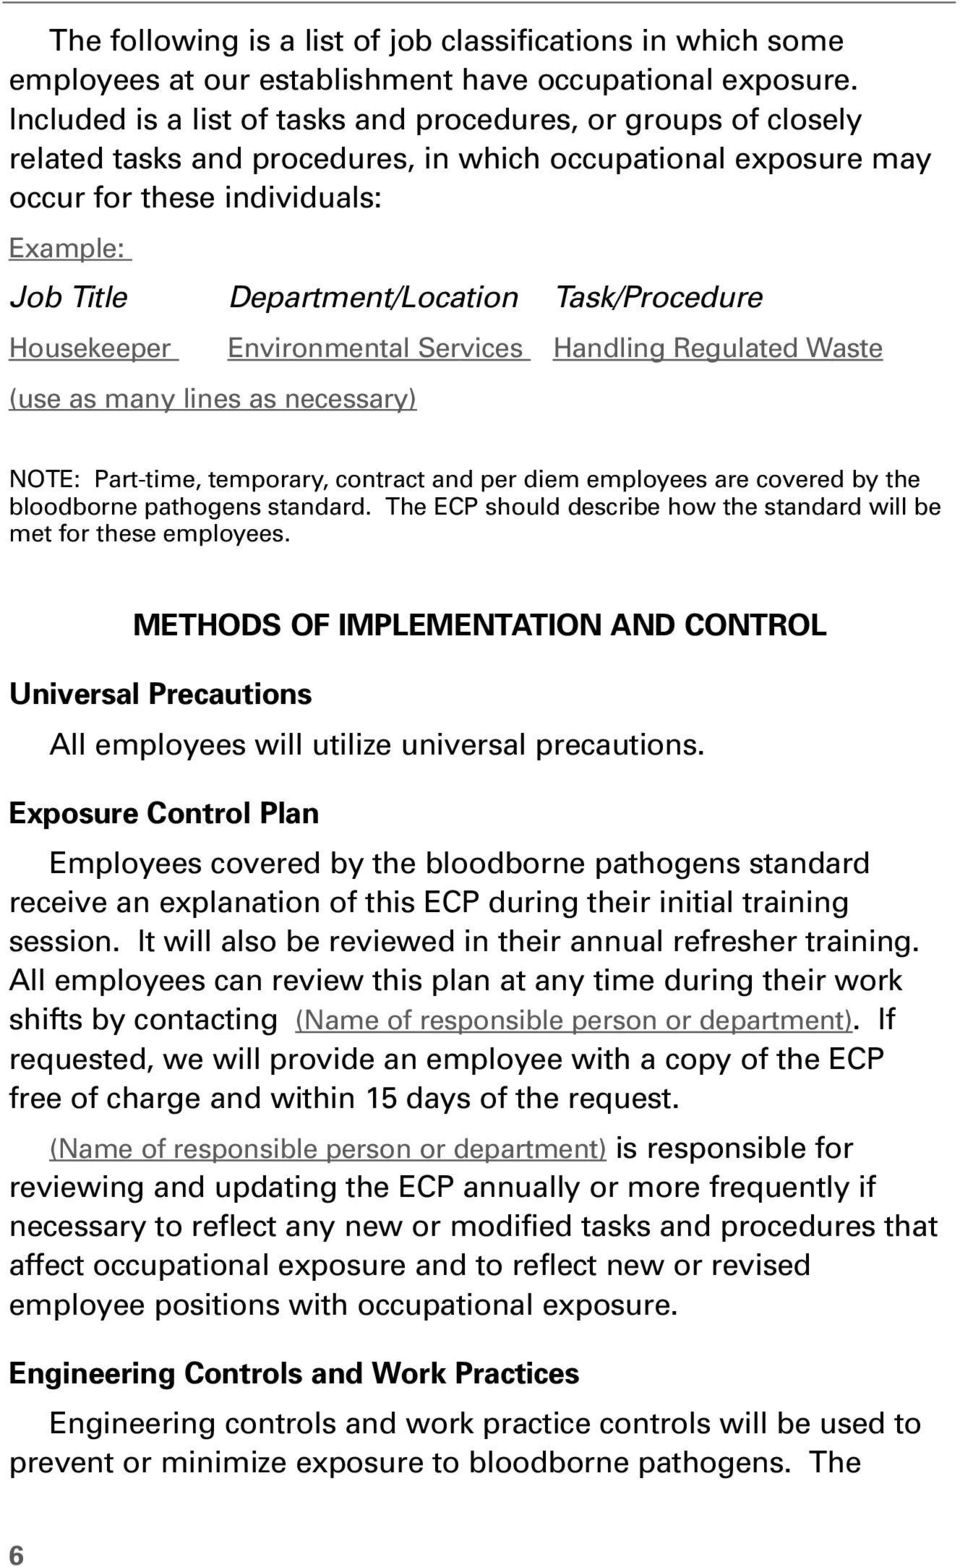 Task/Procedure Housekeeper Environmental Services Handling Regulated Waste (use as many lines as necessary) NOTE: Part-time, temporary, contract and per diem employees are covered by the bloodborne